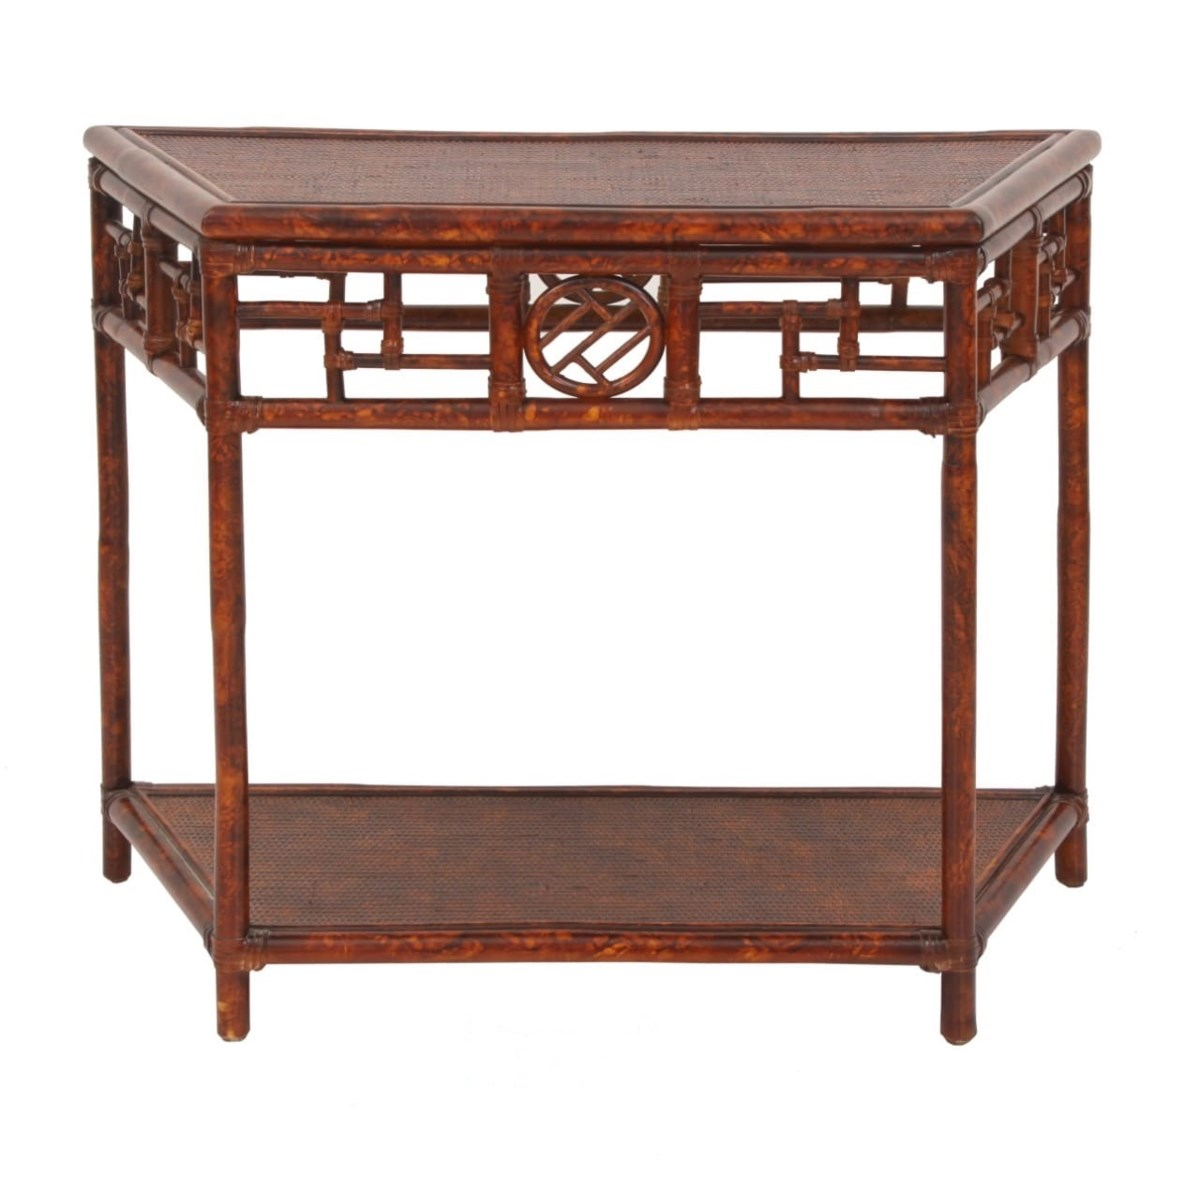 Demilune Table, Large Woven Top Rattan Frame with Leather Wraps Color - Tortoise